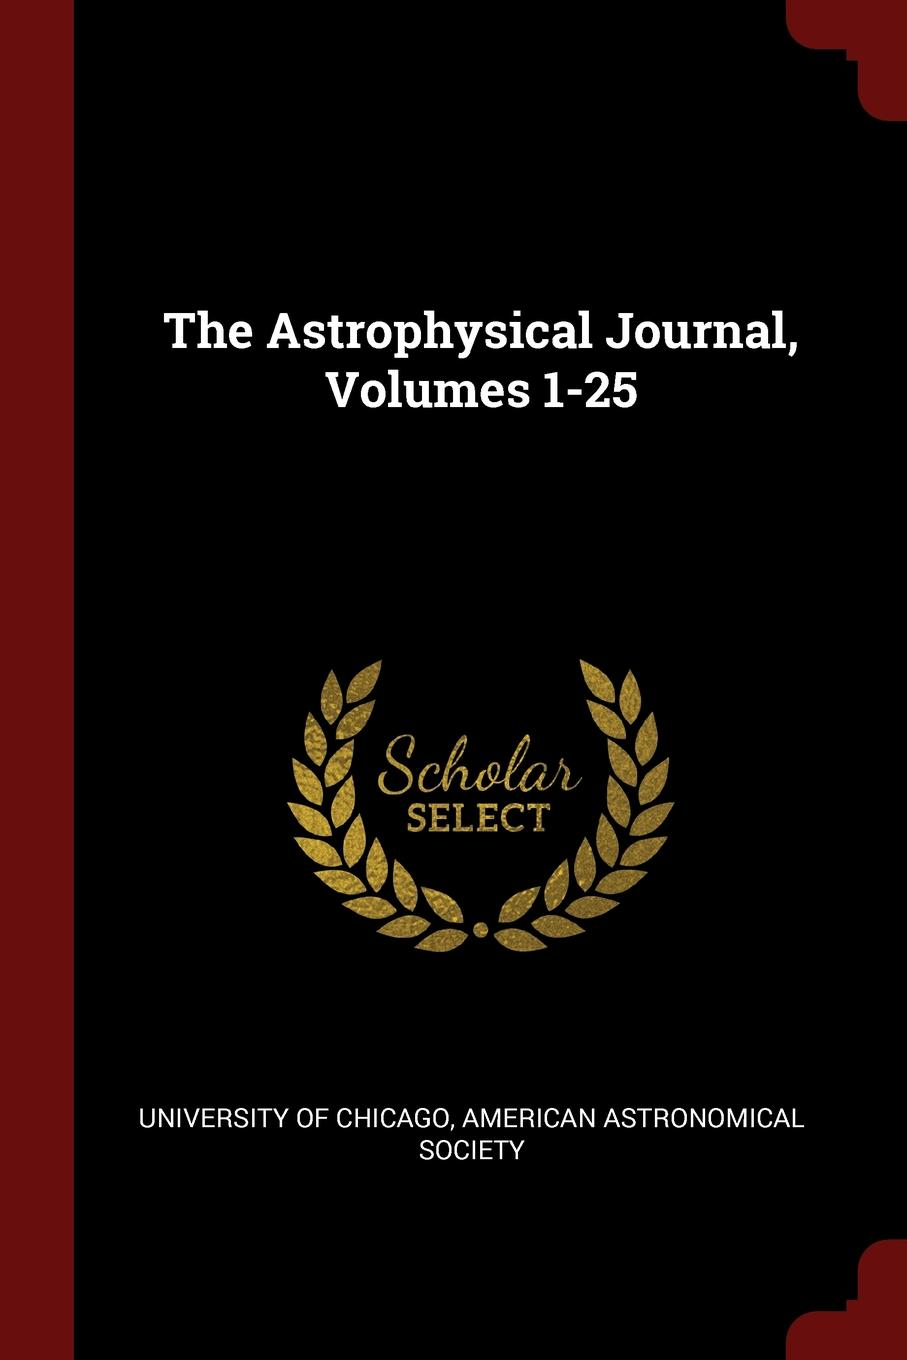 The Astrophysical Journal, Volumes 1-25.